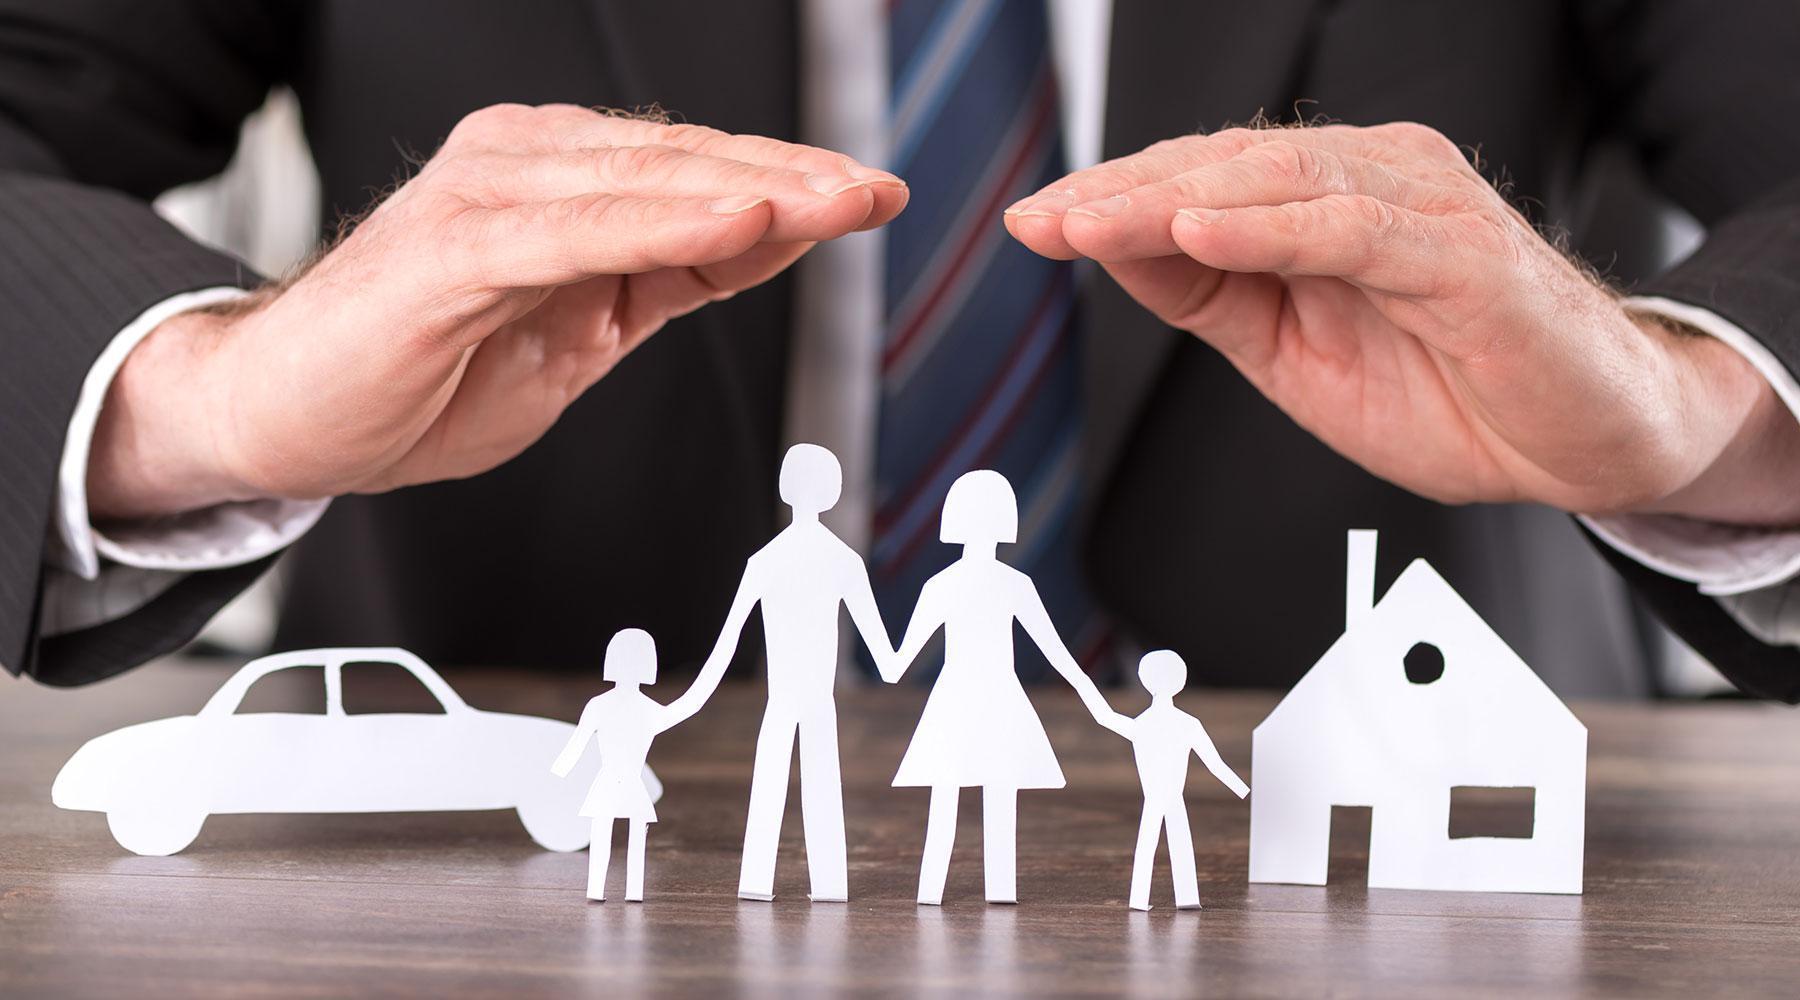 Mortgage Insurance & Protection